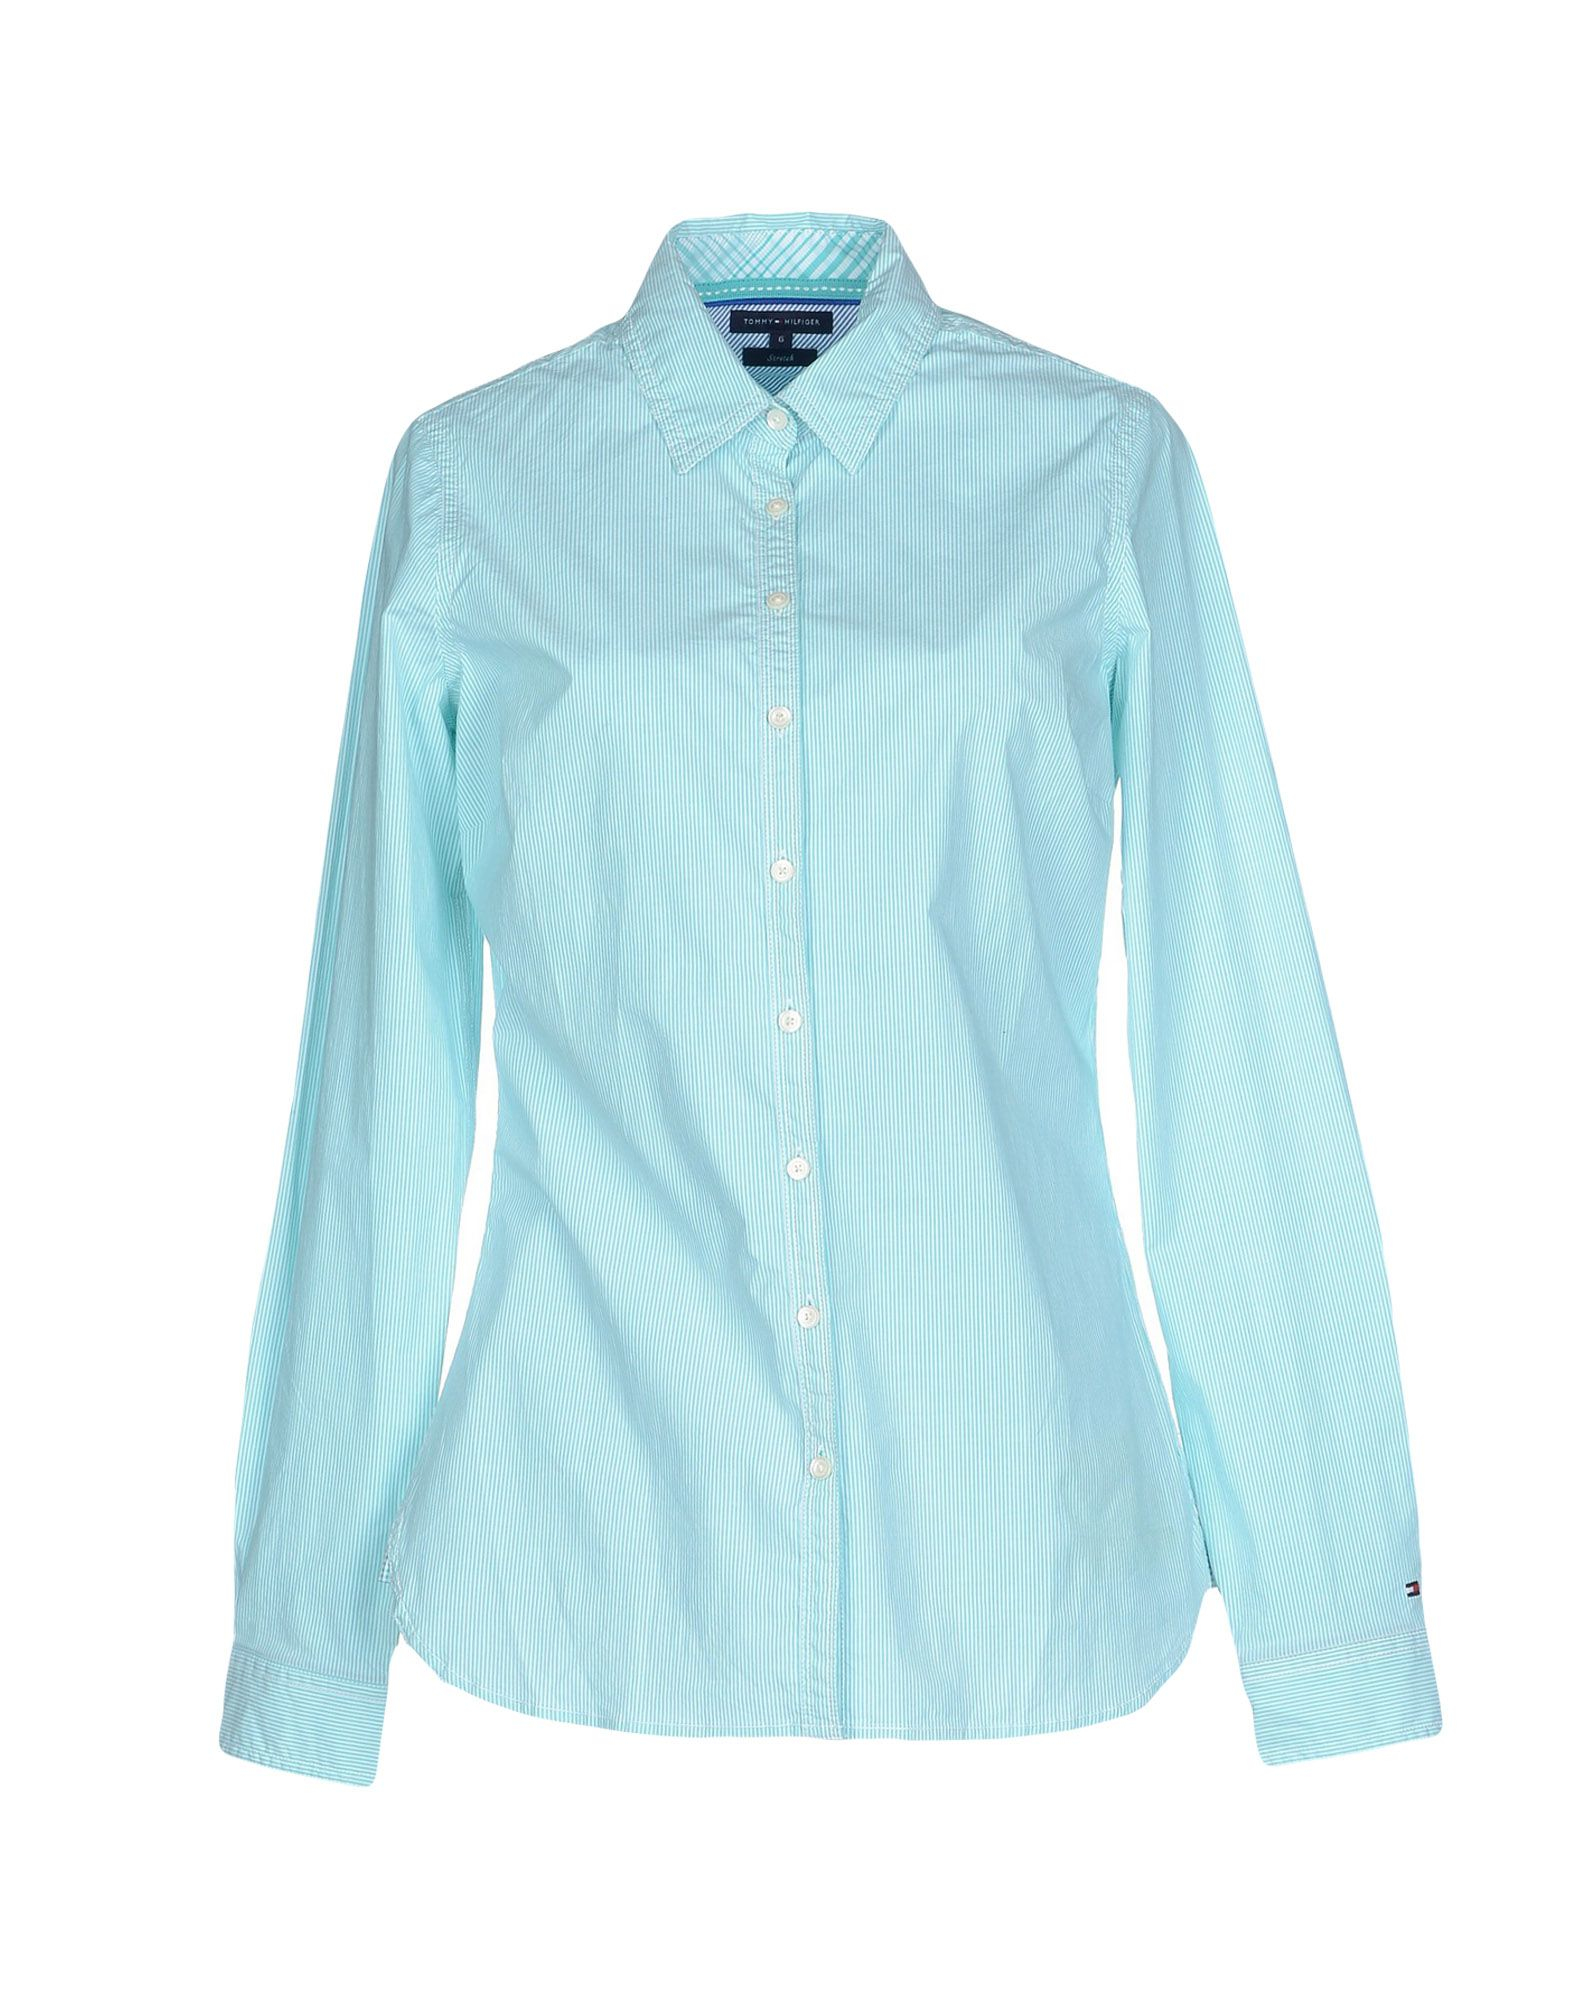 Lyst - Tommy hilfiger Shirt in Blue